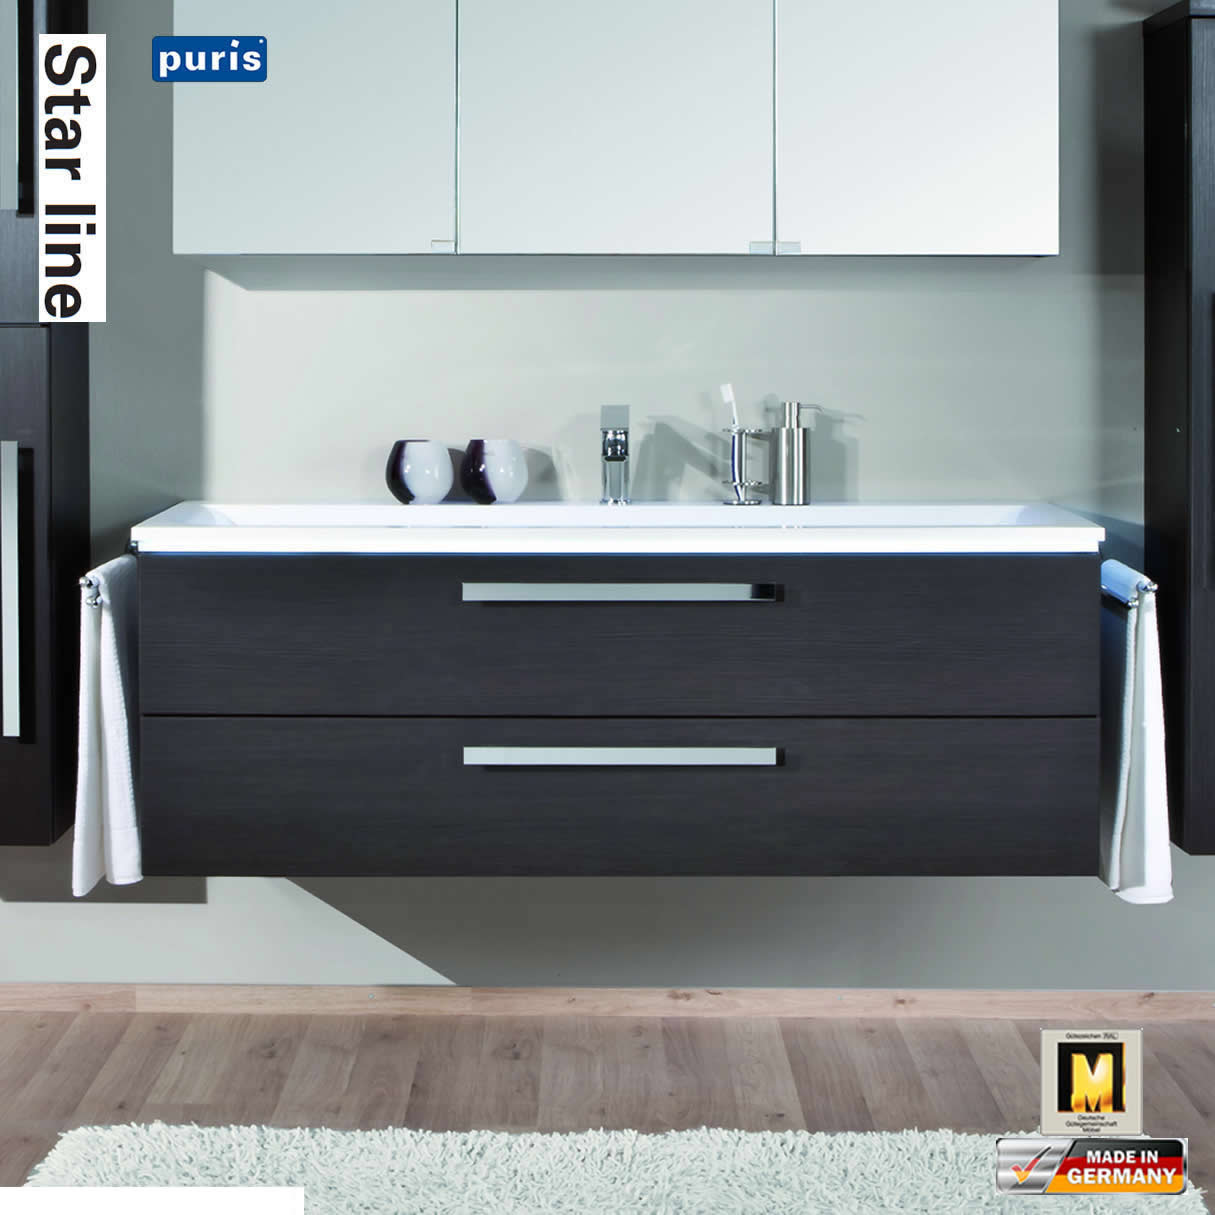 puris star line 140 cm unterschrank 2 ausz ge mit einzelwaschtisch 0140 ewt 2 impuls home. Black Bedroom Furniture Sets. Home Design Ideas